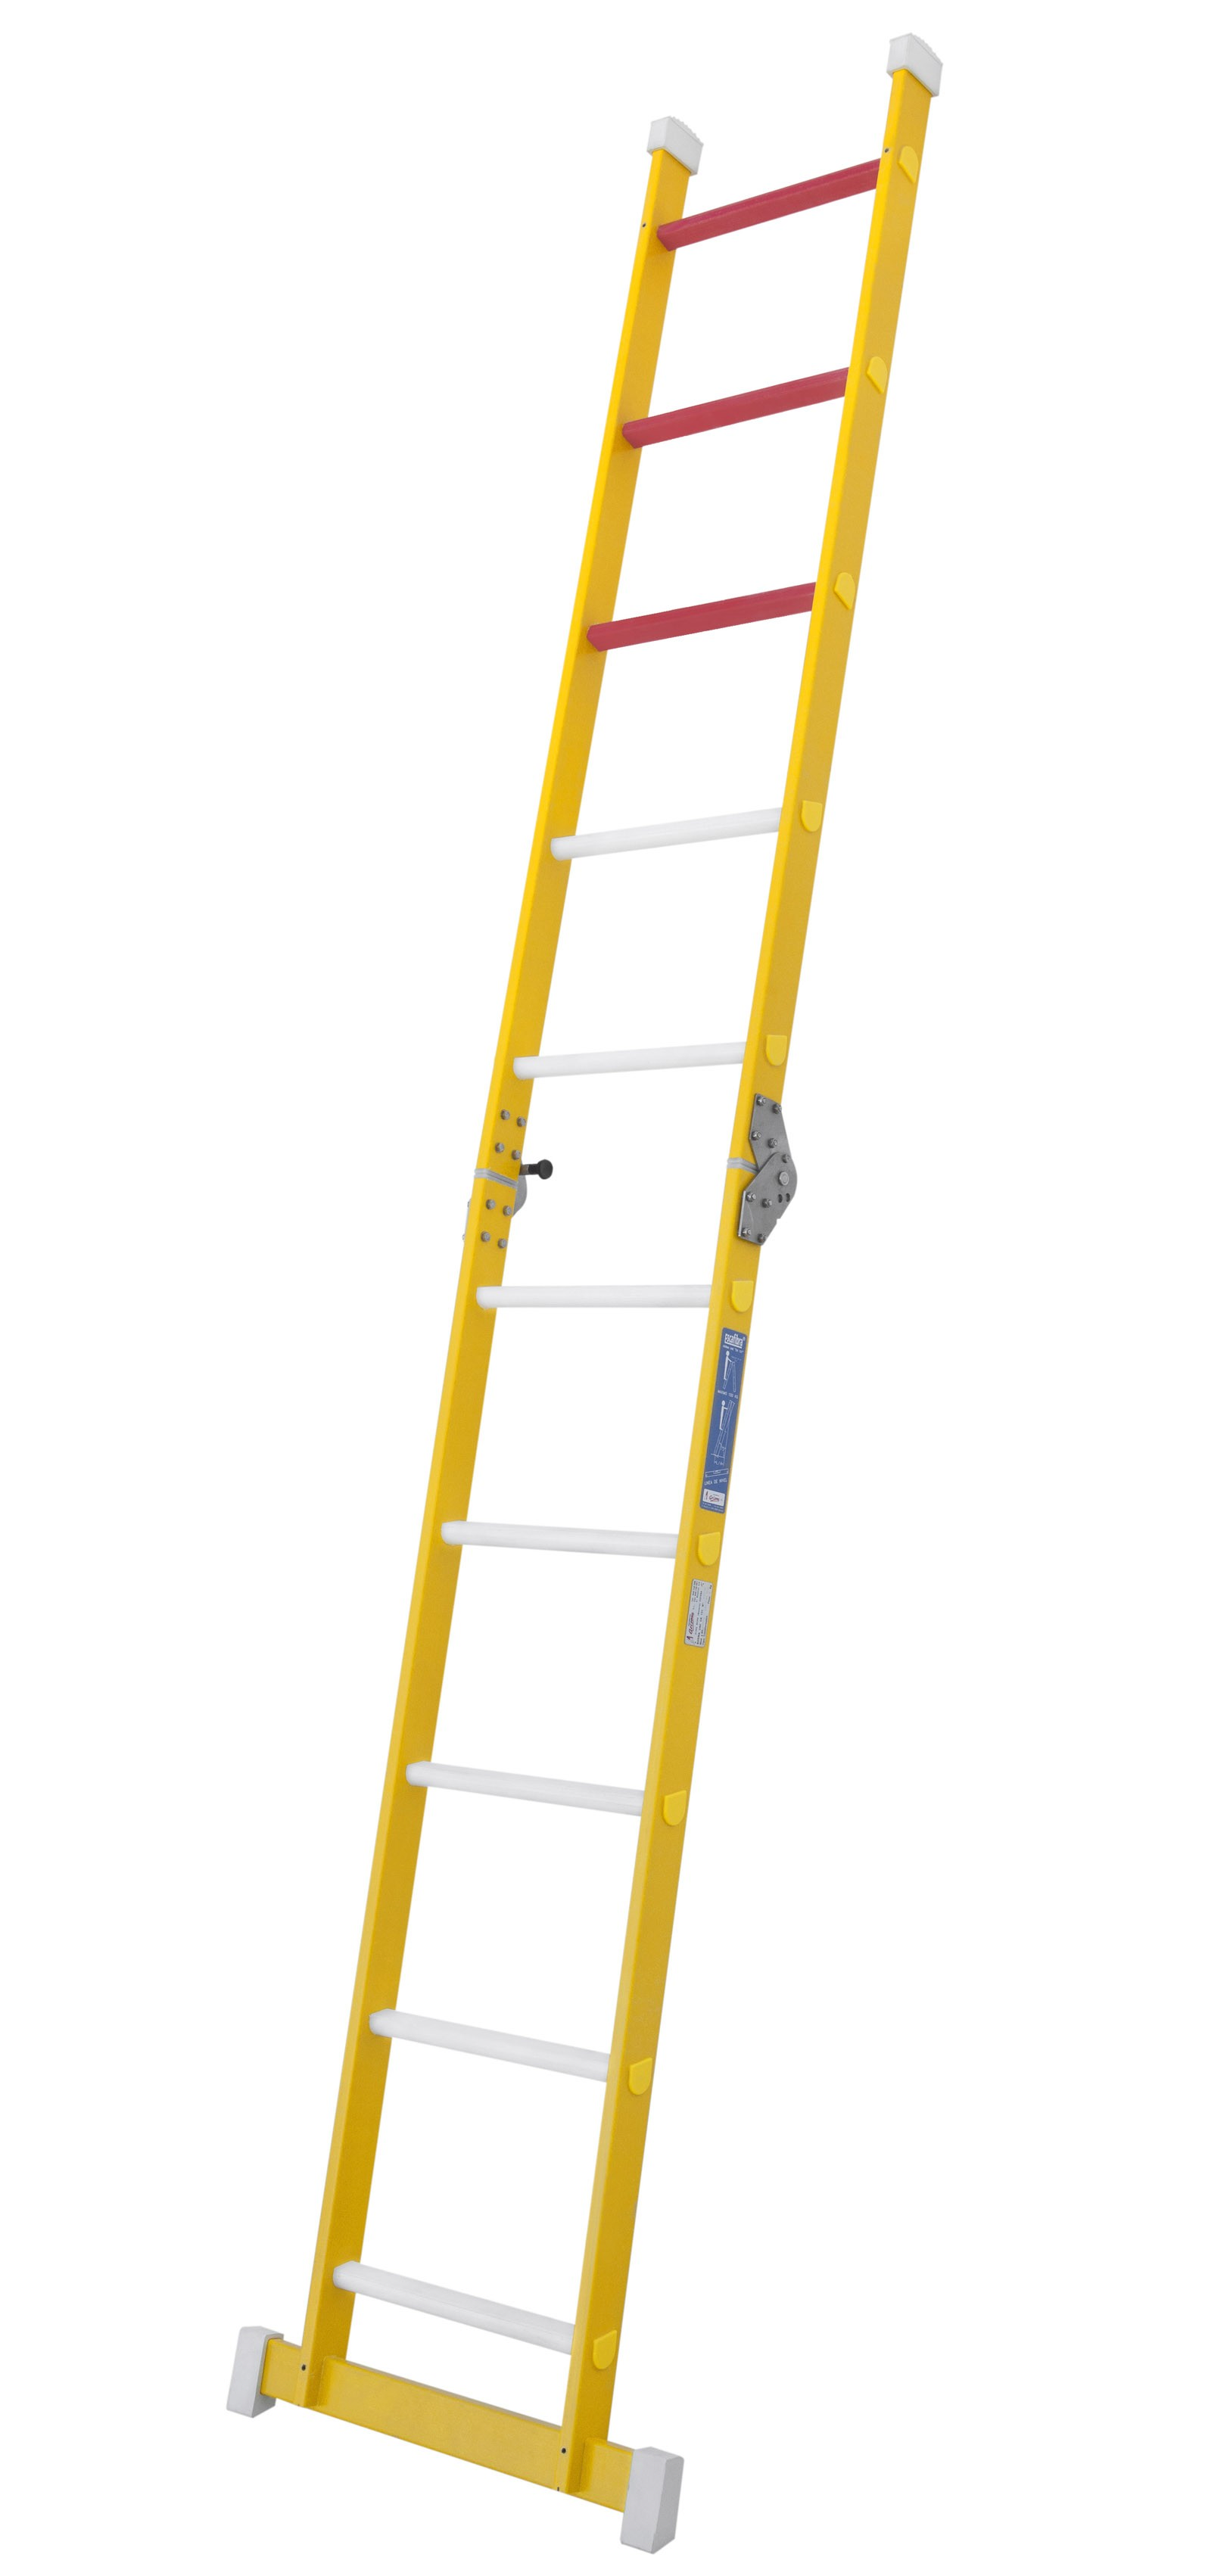 Fibreglass Single-section Folding Ladder